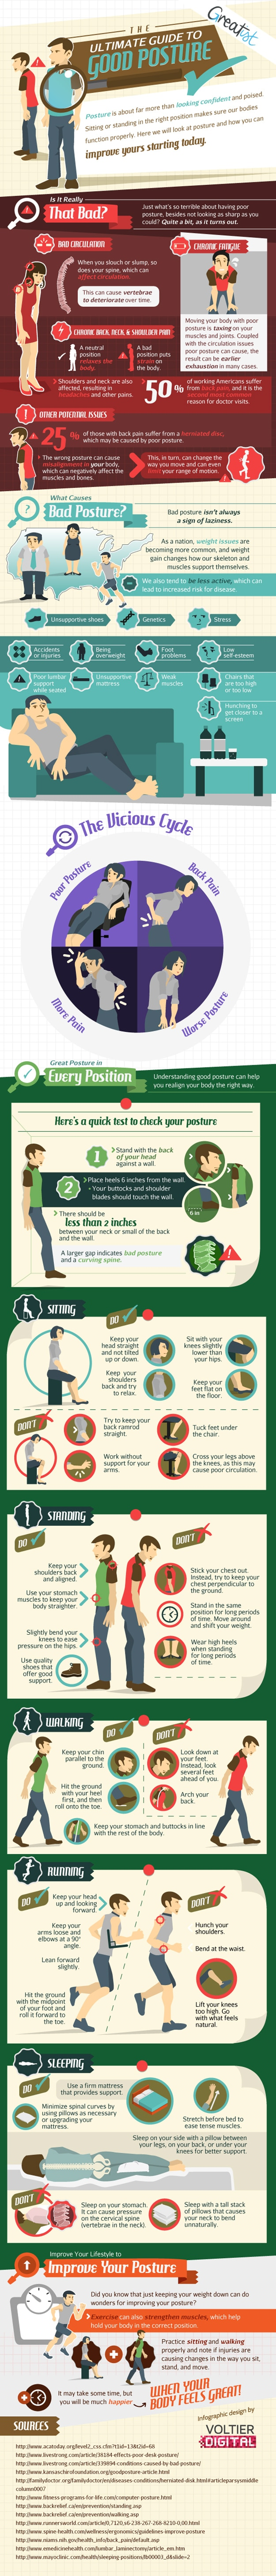 The Geek's Ultimate Guide To Improving Bad Posture [Infographic]